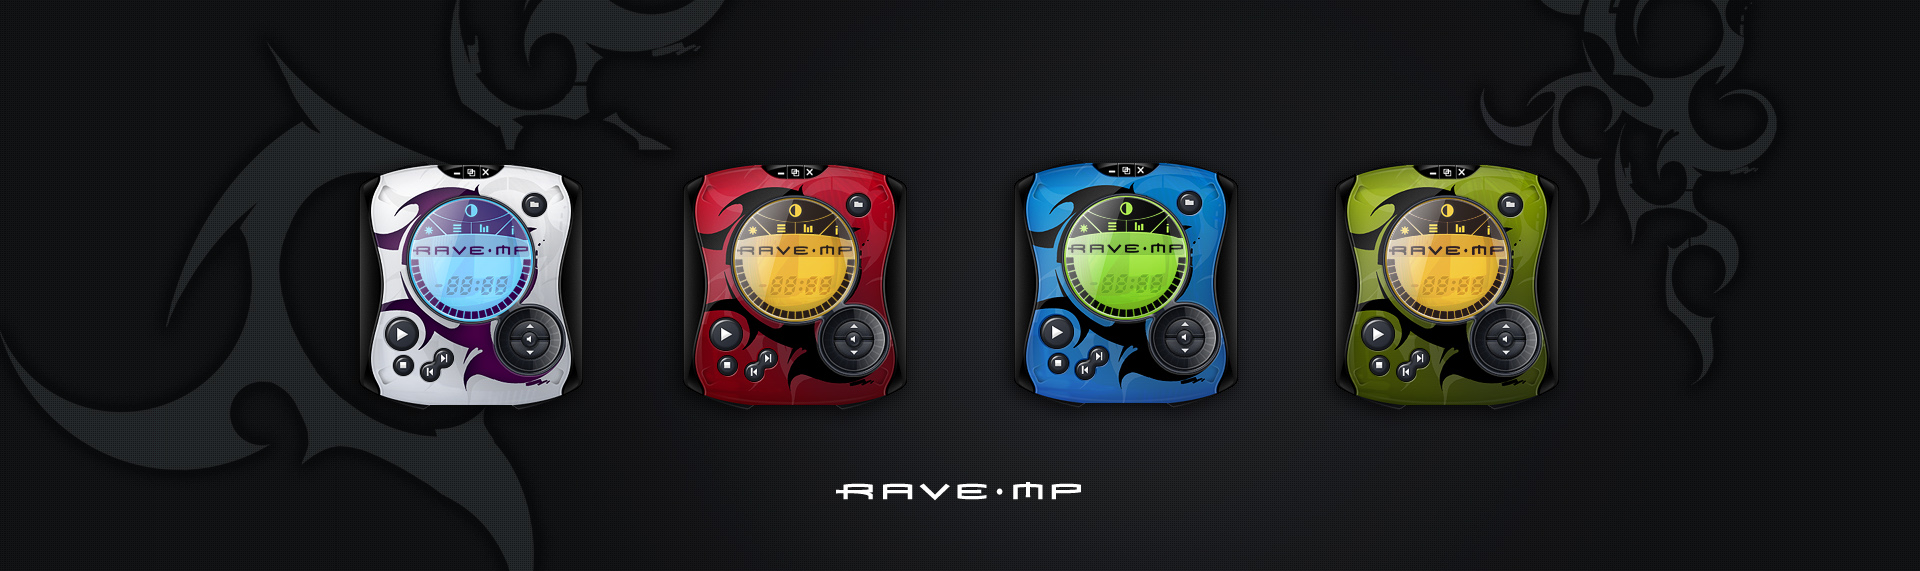 RAVE MP  Client: Go Video  Like its real world counterpart the RAVE-MP Windows Media Player skin is long on ergonomic design and ripe with intuitive construction. With 4 distinct color schemes, RAVE-MP is the new name in cool when it comes to player skins. Sporting sleek tribal patterns and colors that could only have been plucked from the slickest paint palette, we guarantee to make even the most square user - hip.